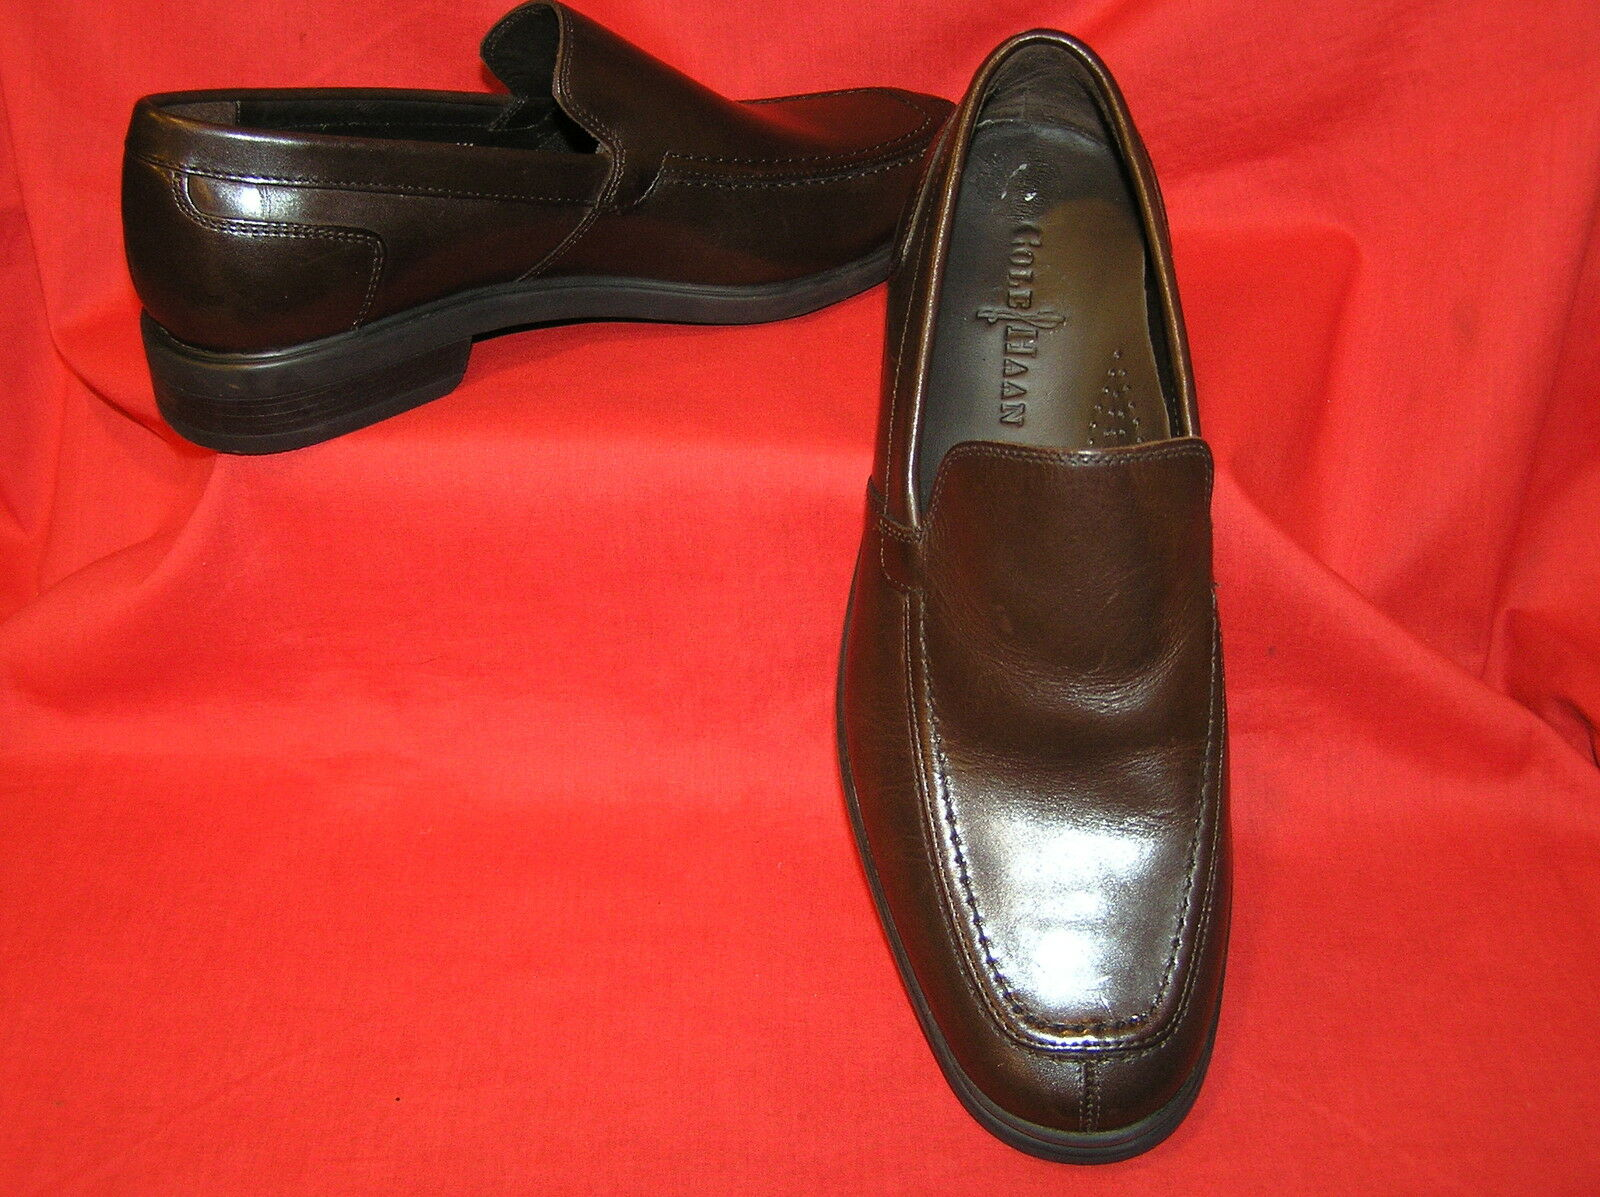 COLE HAAN CH PENNY LOAFERS MENS SHOES FLATS BROWN LEATHER 8  148.00